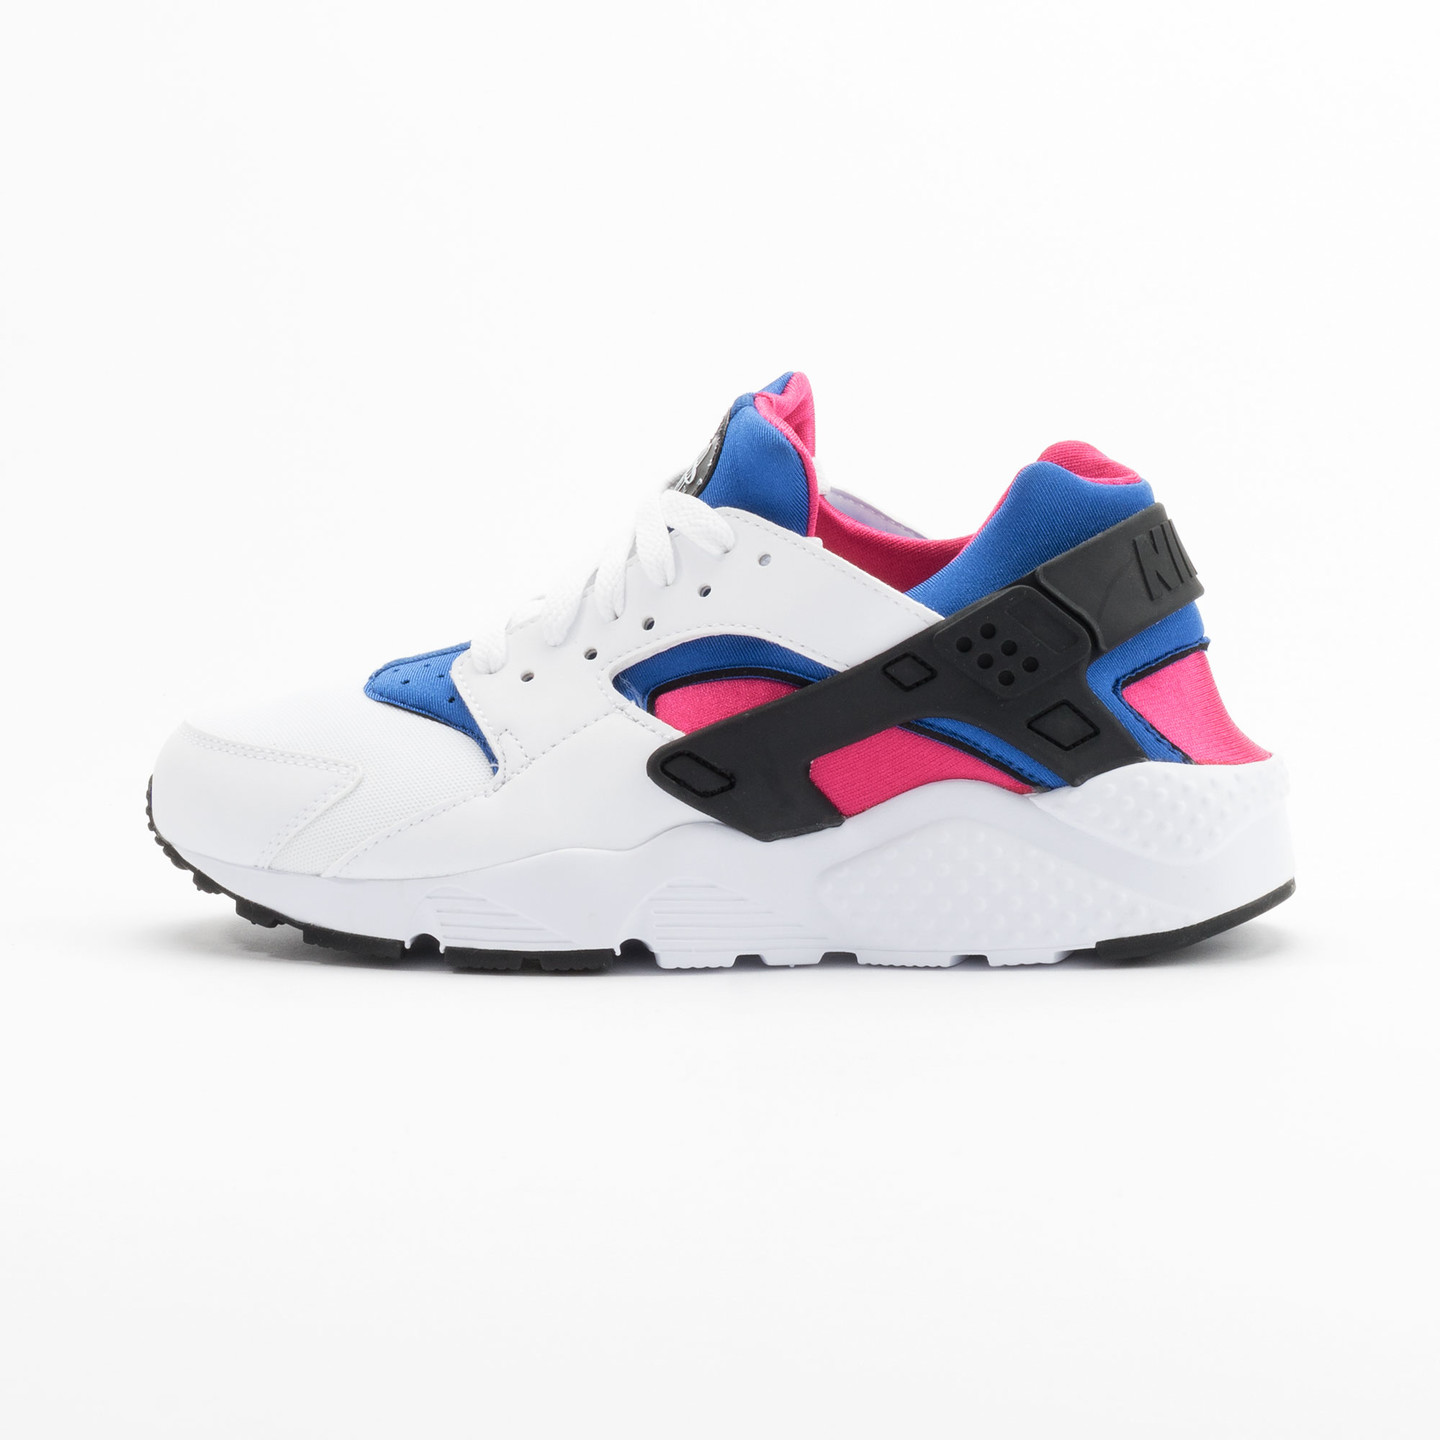 Nike Huarache Run GS White / Black / Game-Royal / Vivid-Pink 654275-106-38.5